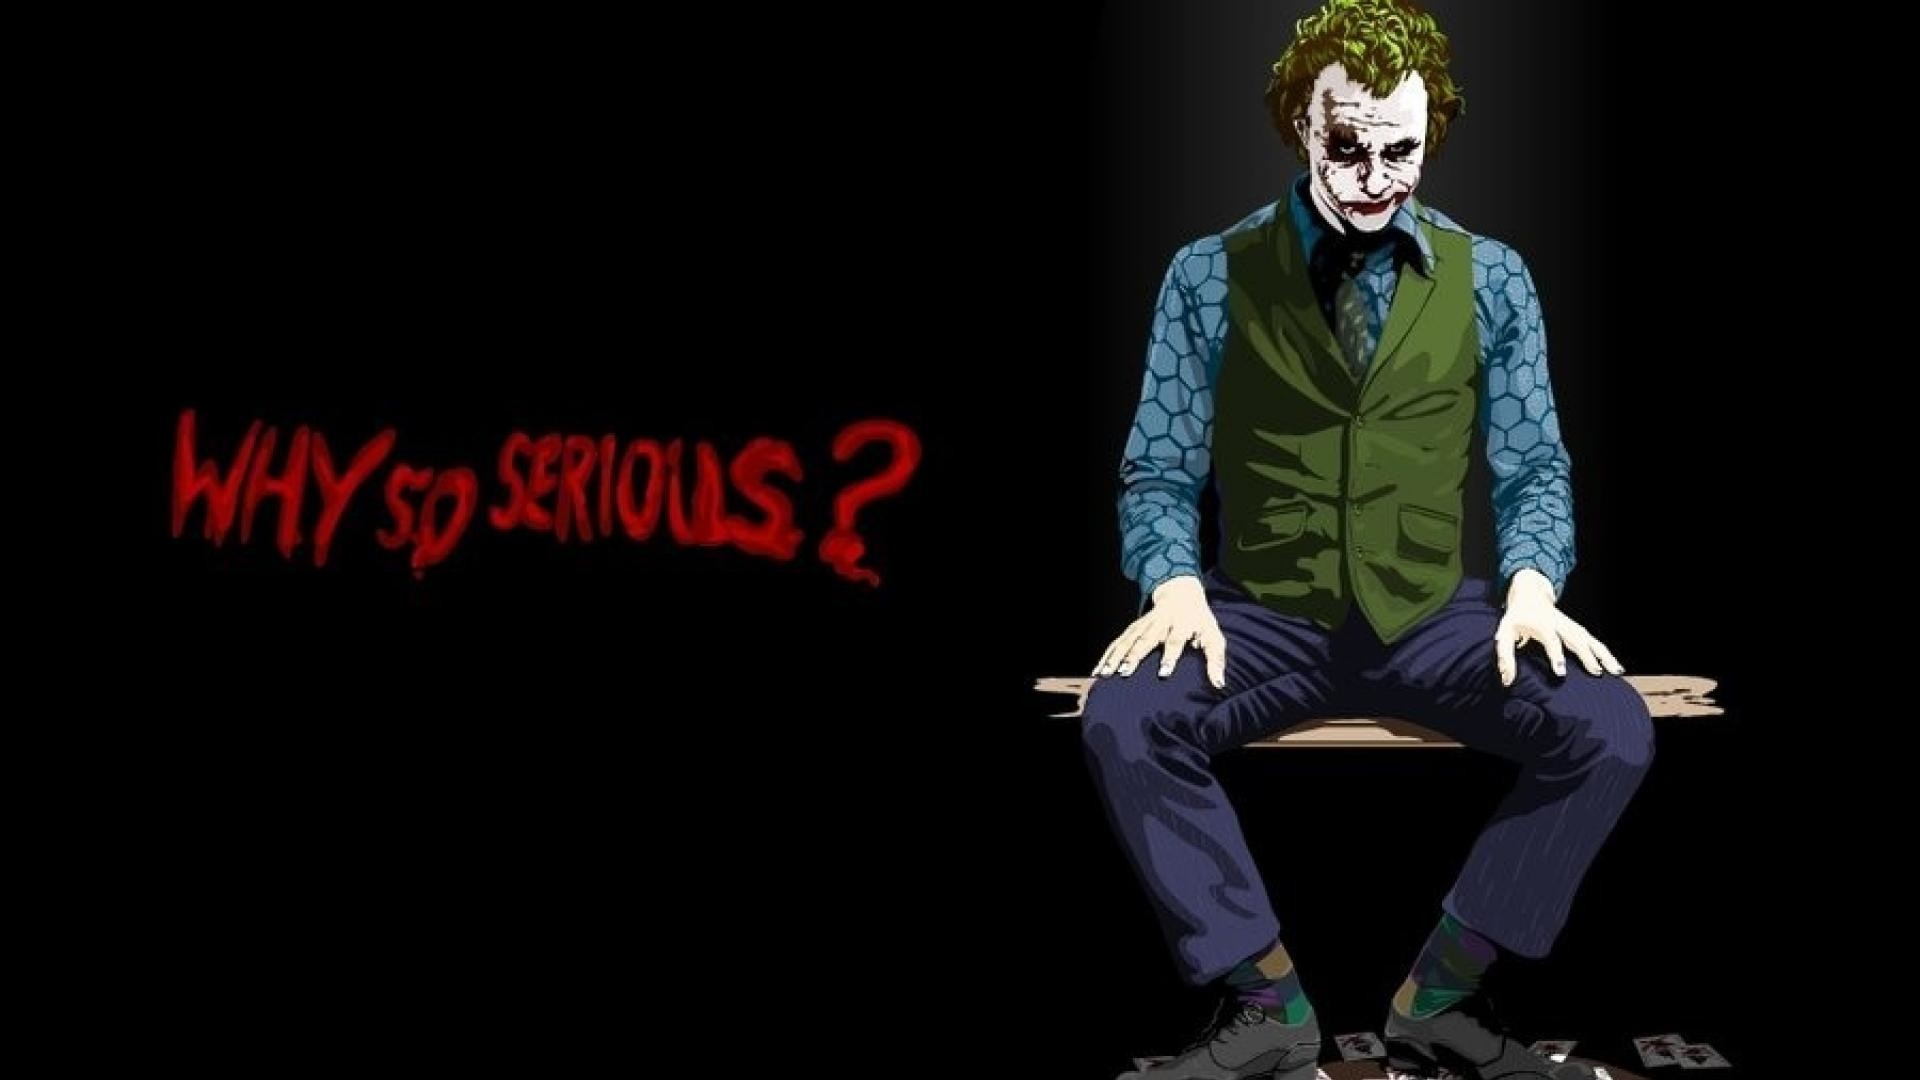 Why So Serious Wallpaper Iphone 6 Hd Iphone Joker Wallpaper 75 Images